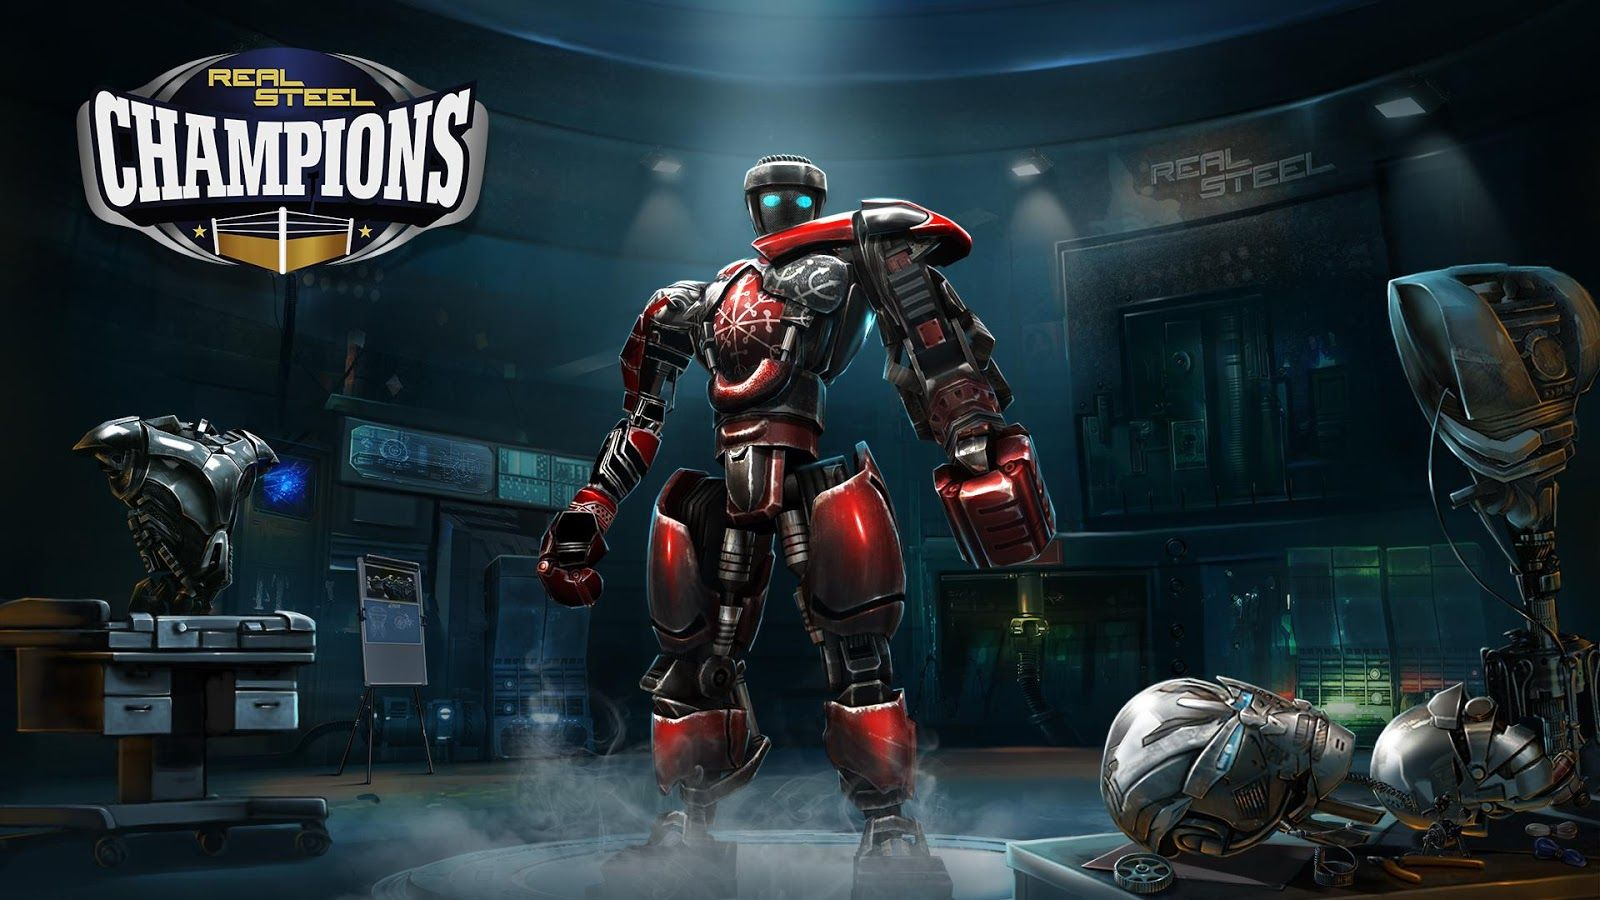 Real Steel Boxing Champions gold hack mod apk and tricks